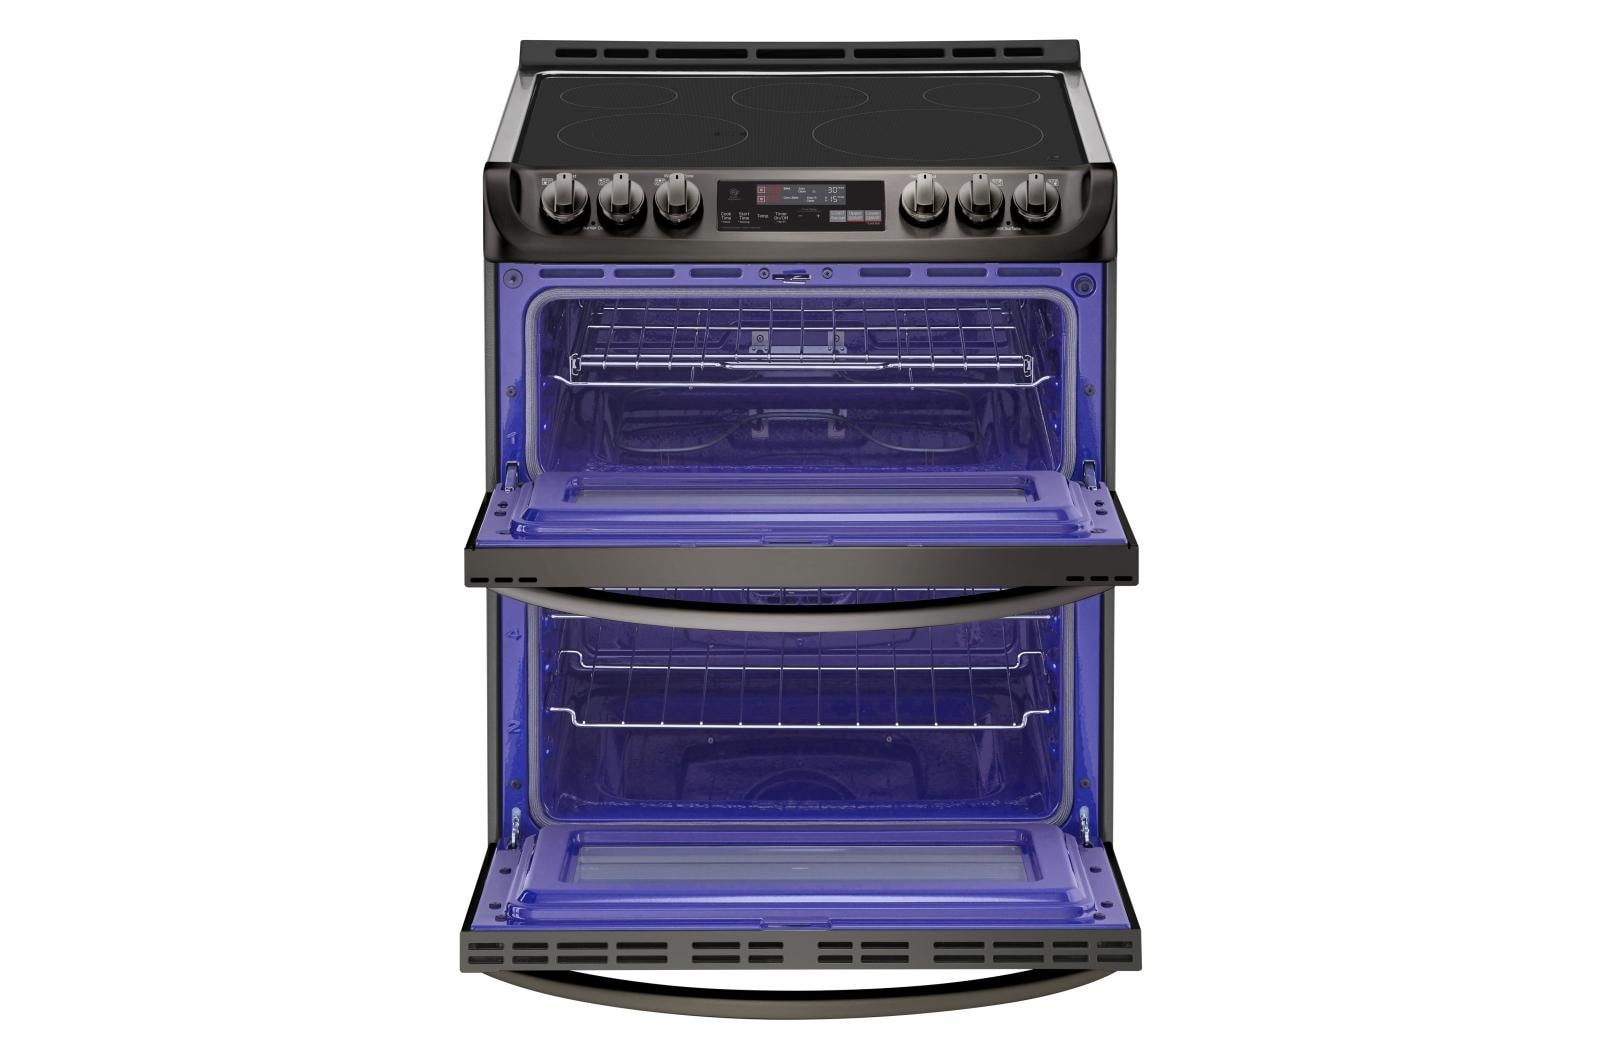 Smart Wi Fi Enabled Electric Double Oven Slide In Range With Probake Convection And Easyclean